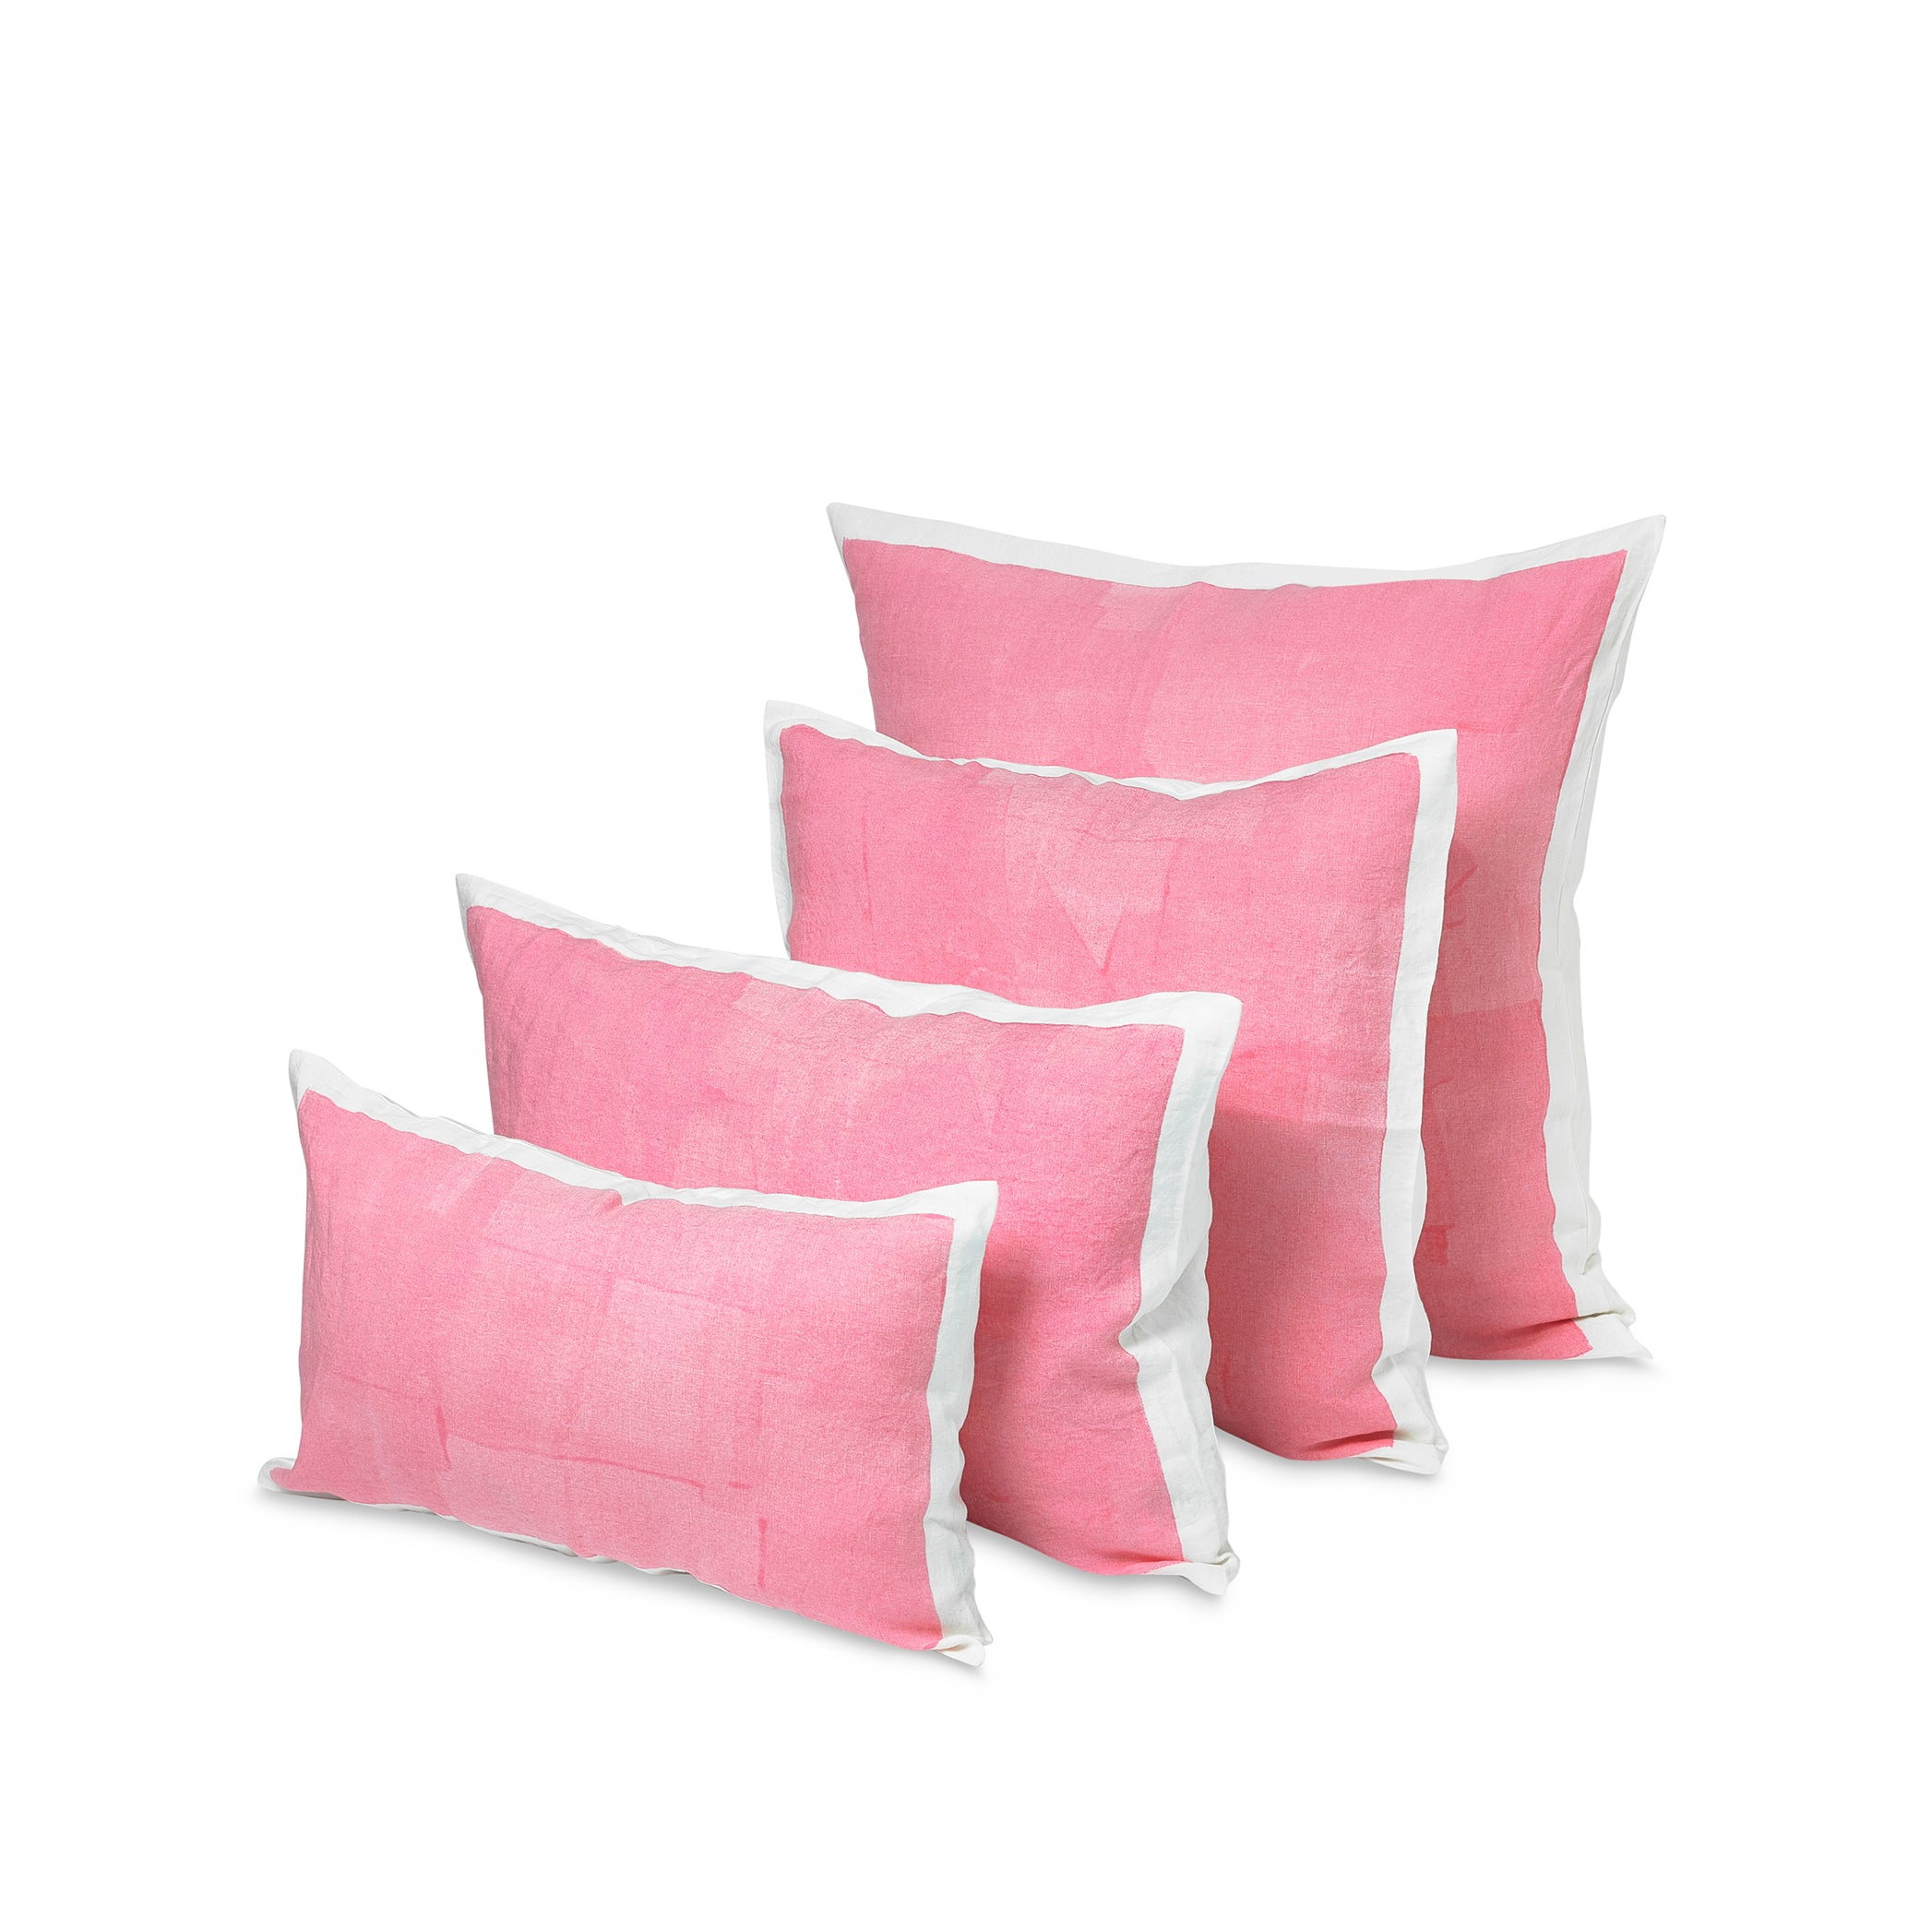 Hand Painted Linen Cushion Cover in Rose Pink, 60cm x 40cm